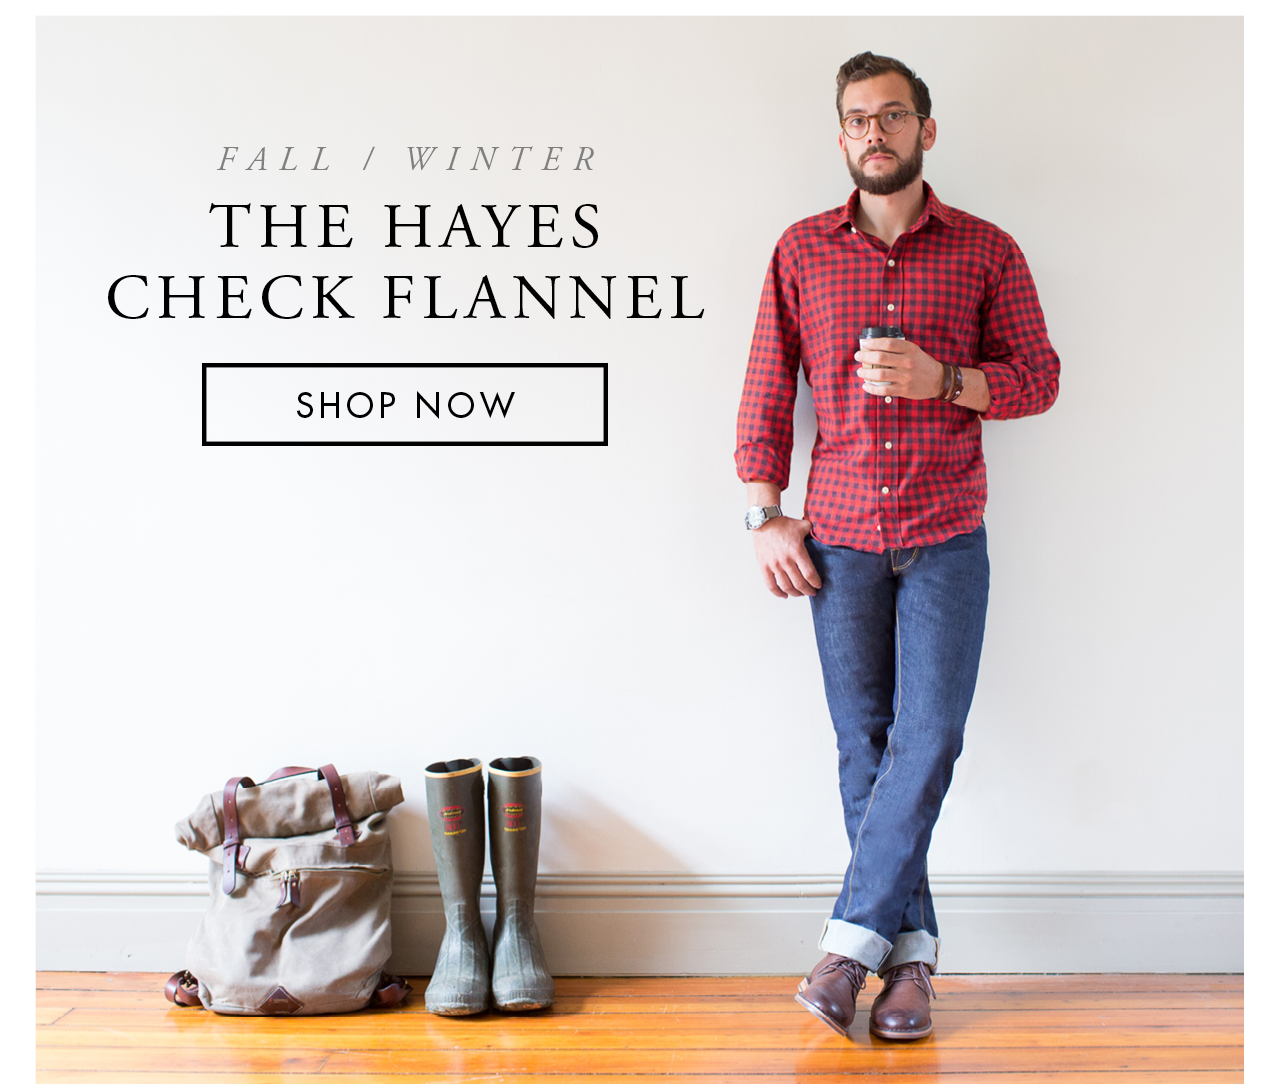 The Hayes Check Flannel